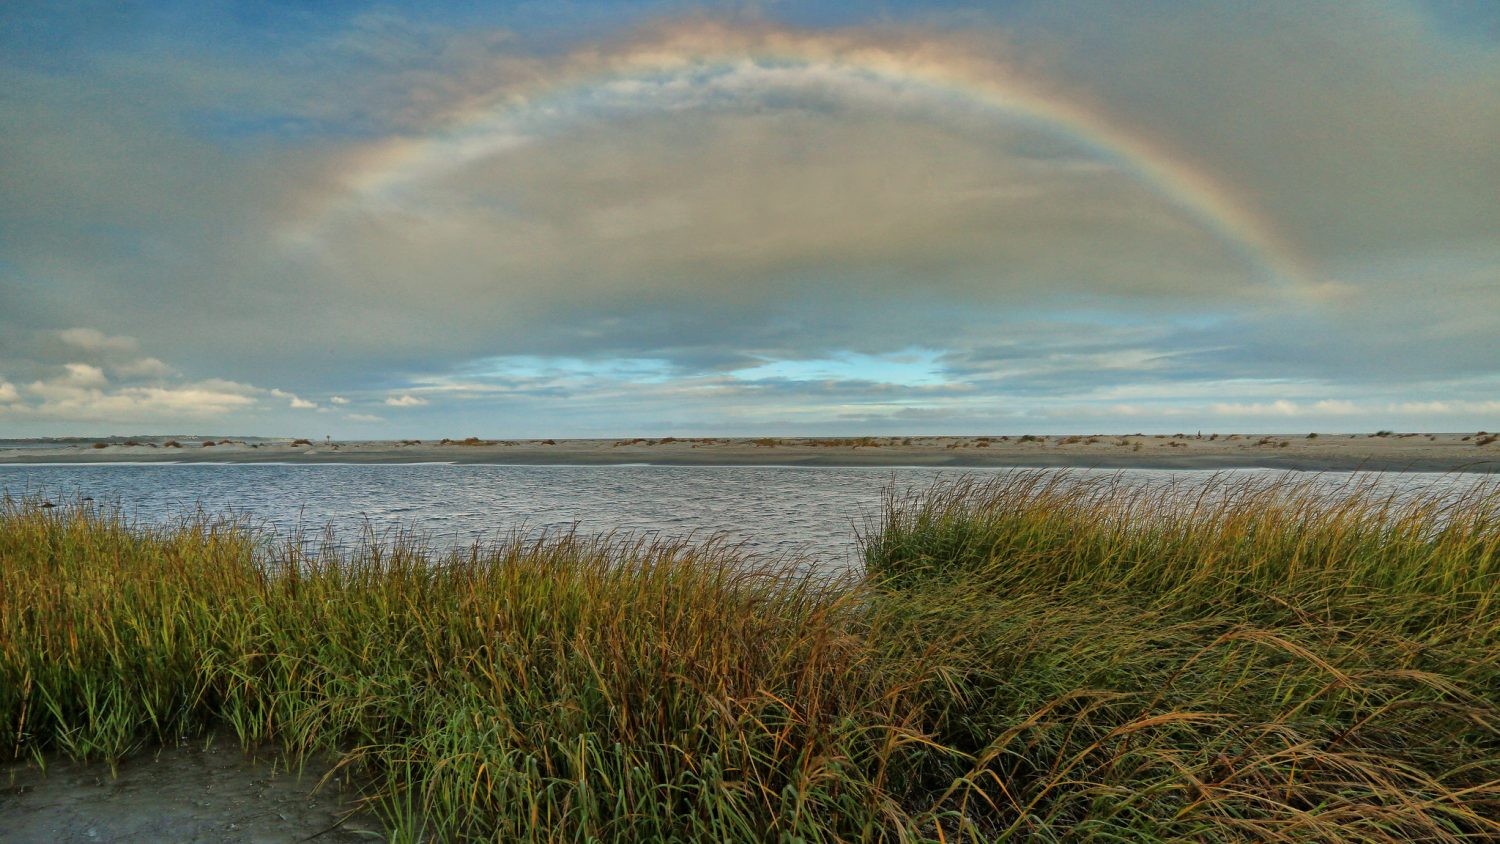 A rainbow sits above the horizon of the ocean at Saint Simons Island in Georgia